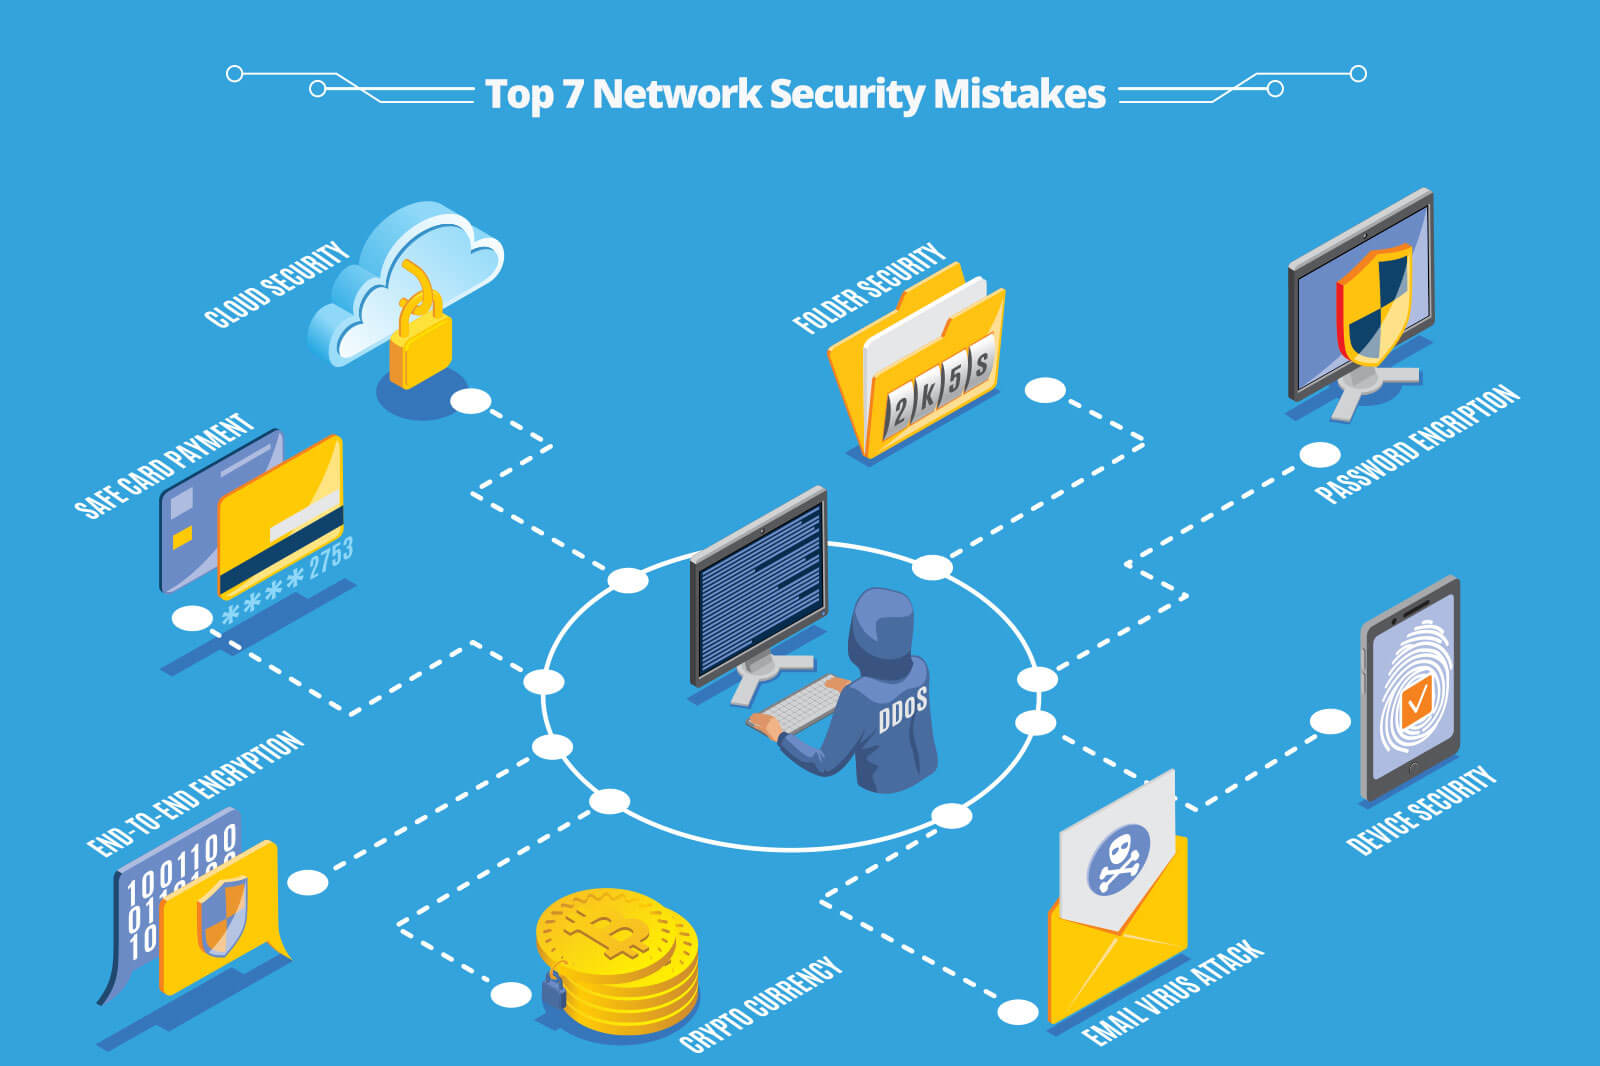 Top 7 Network Security Mistakes